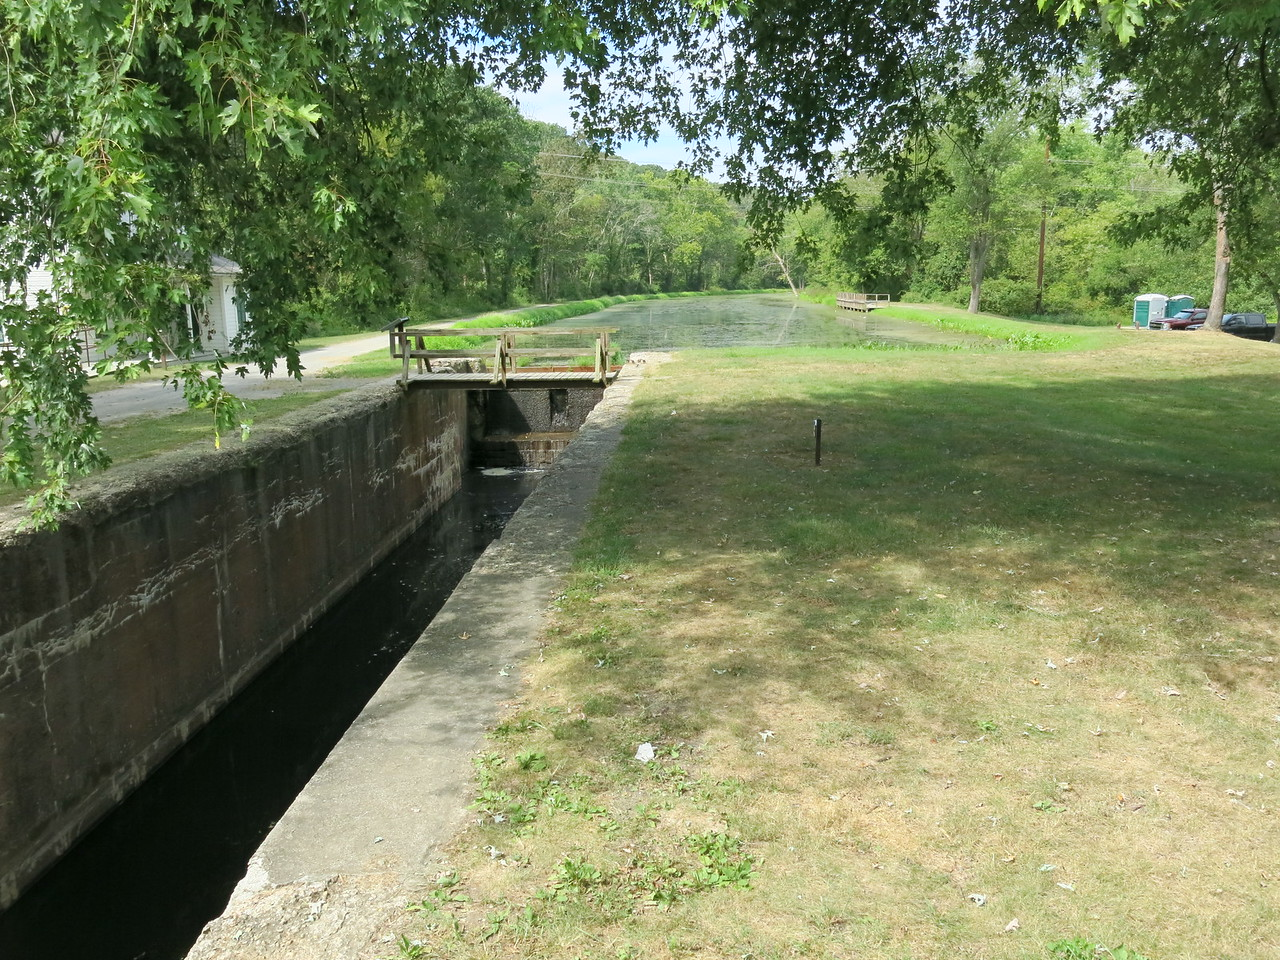 Lock 70 looking at the upstream gate and the canal